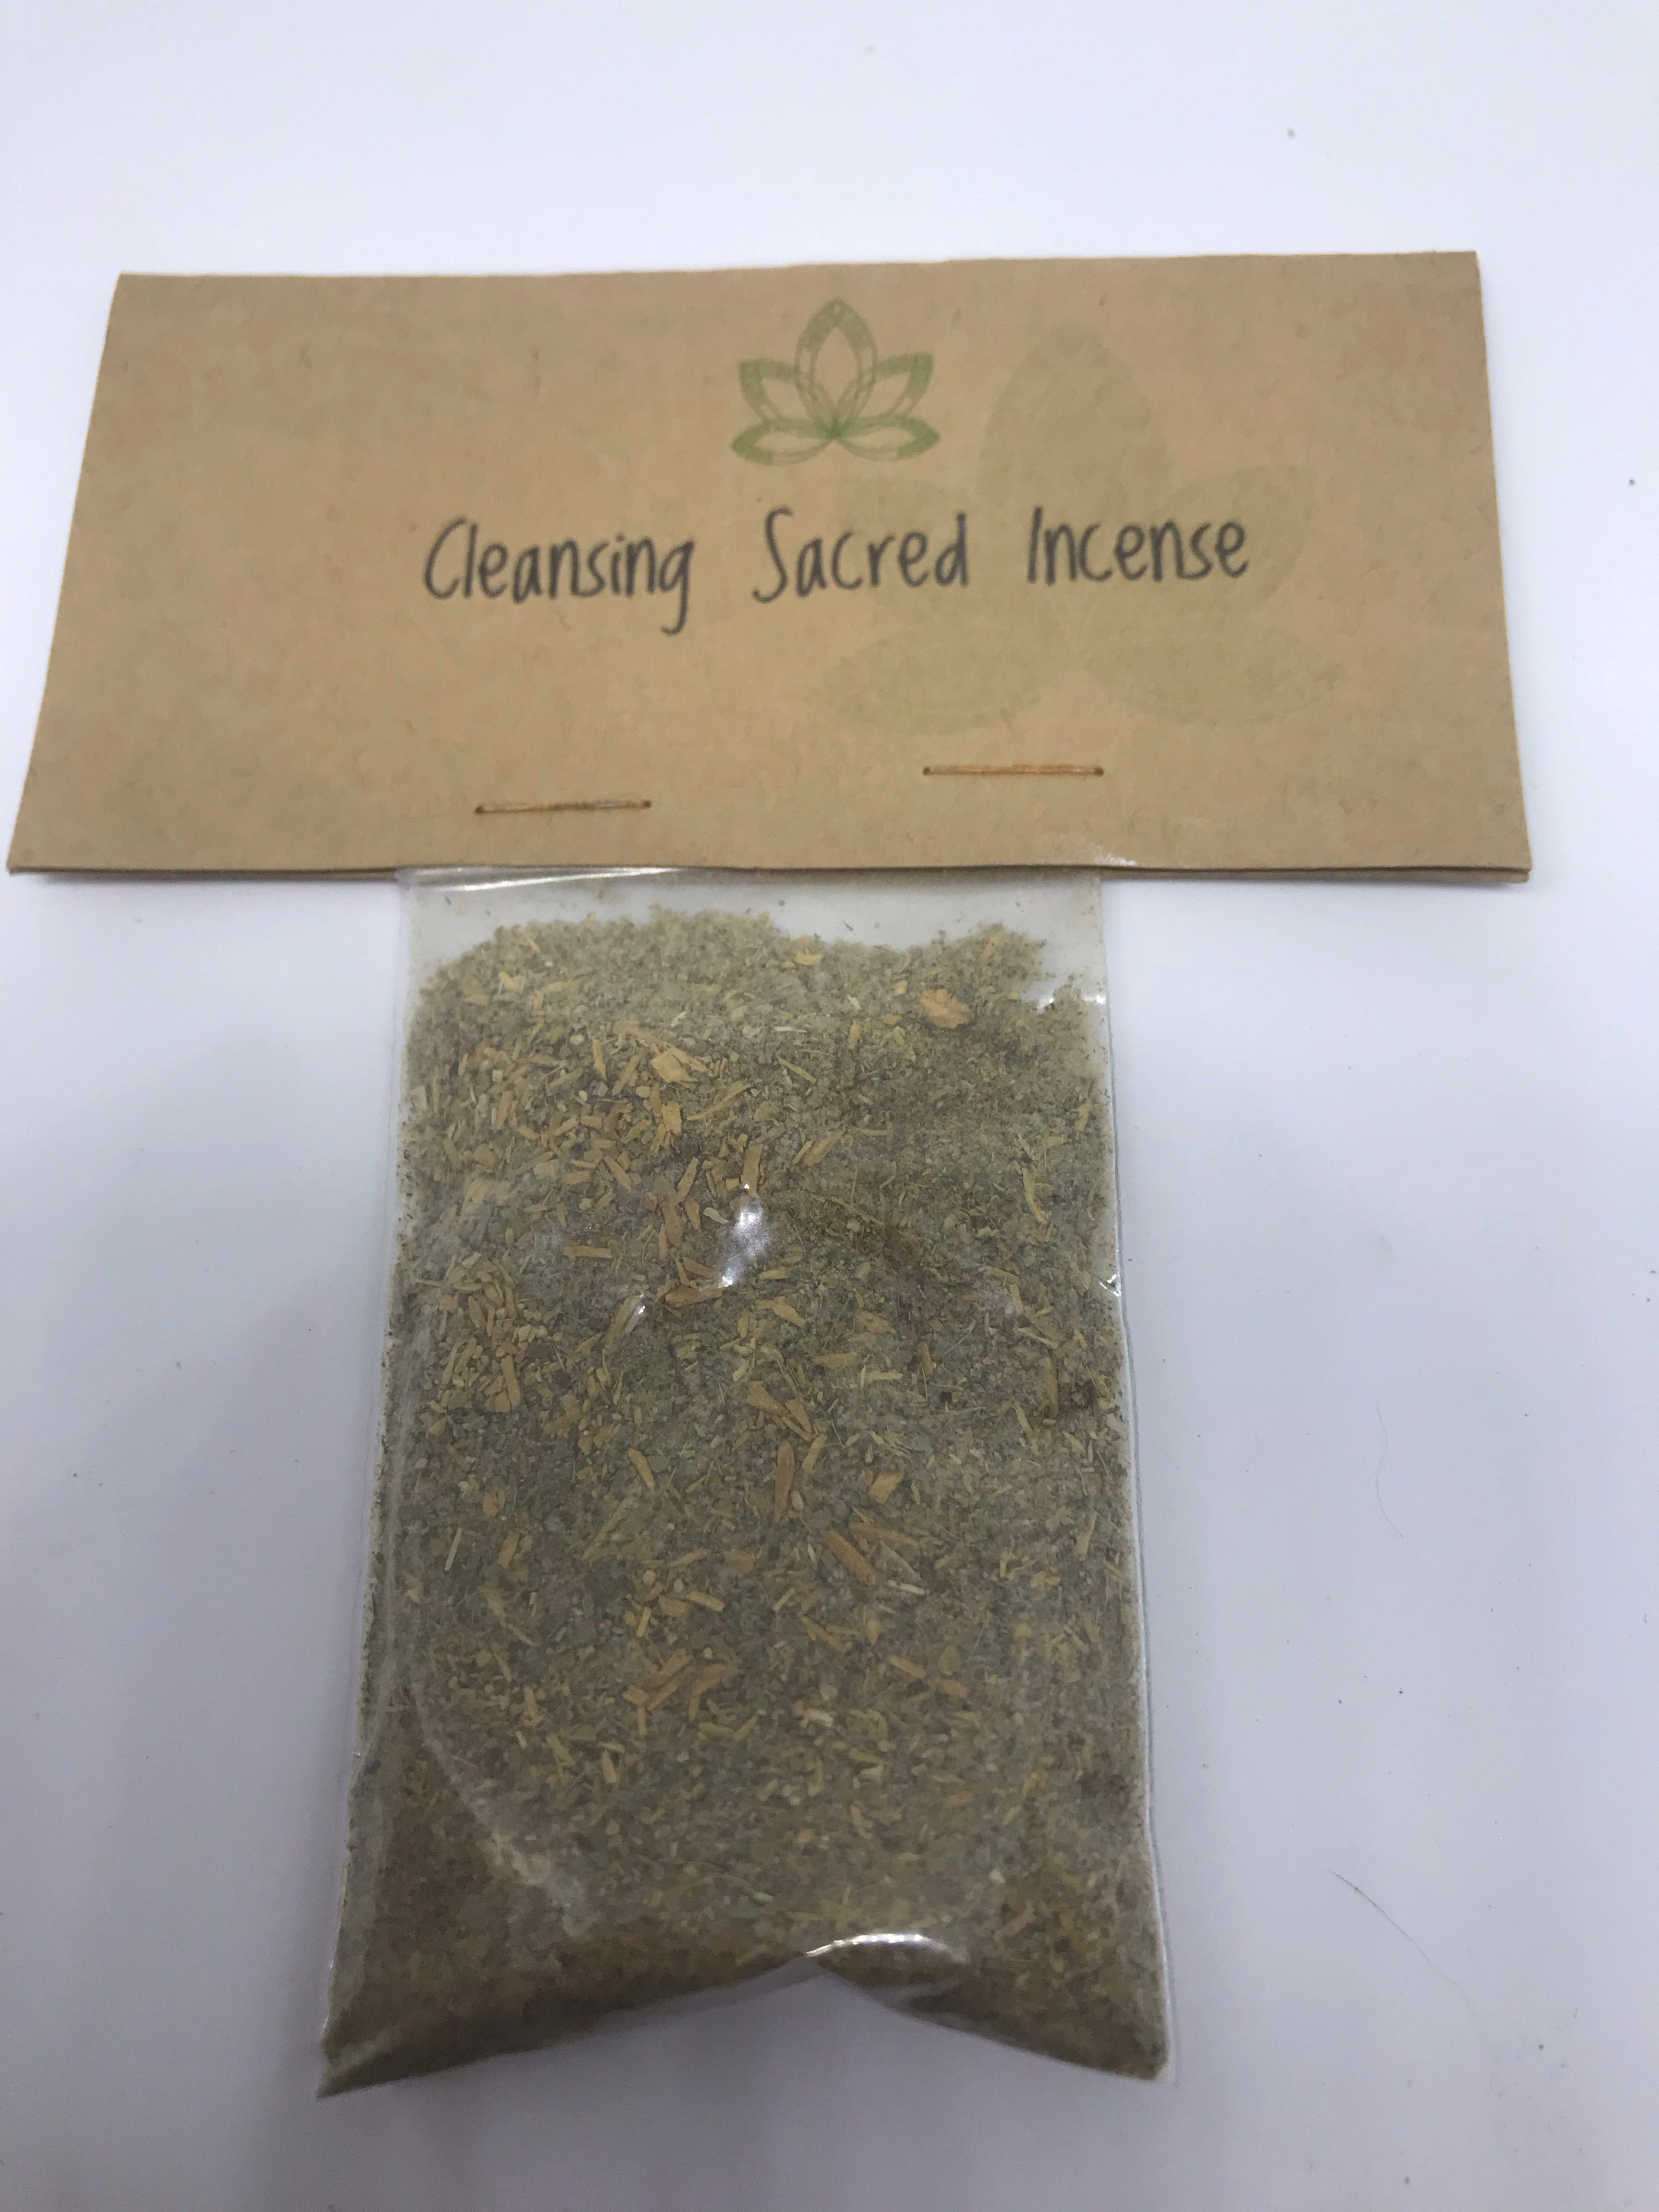 Cleansing sacred incense - Mountain View Candle Works